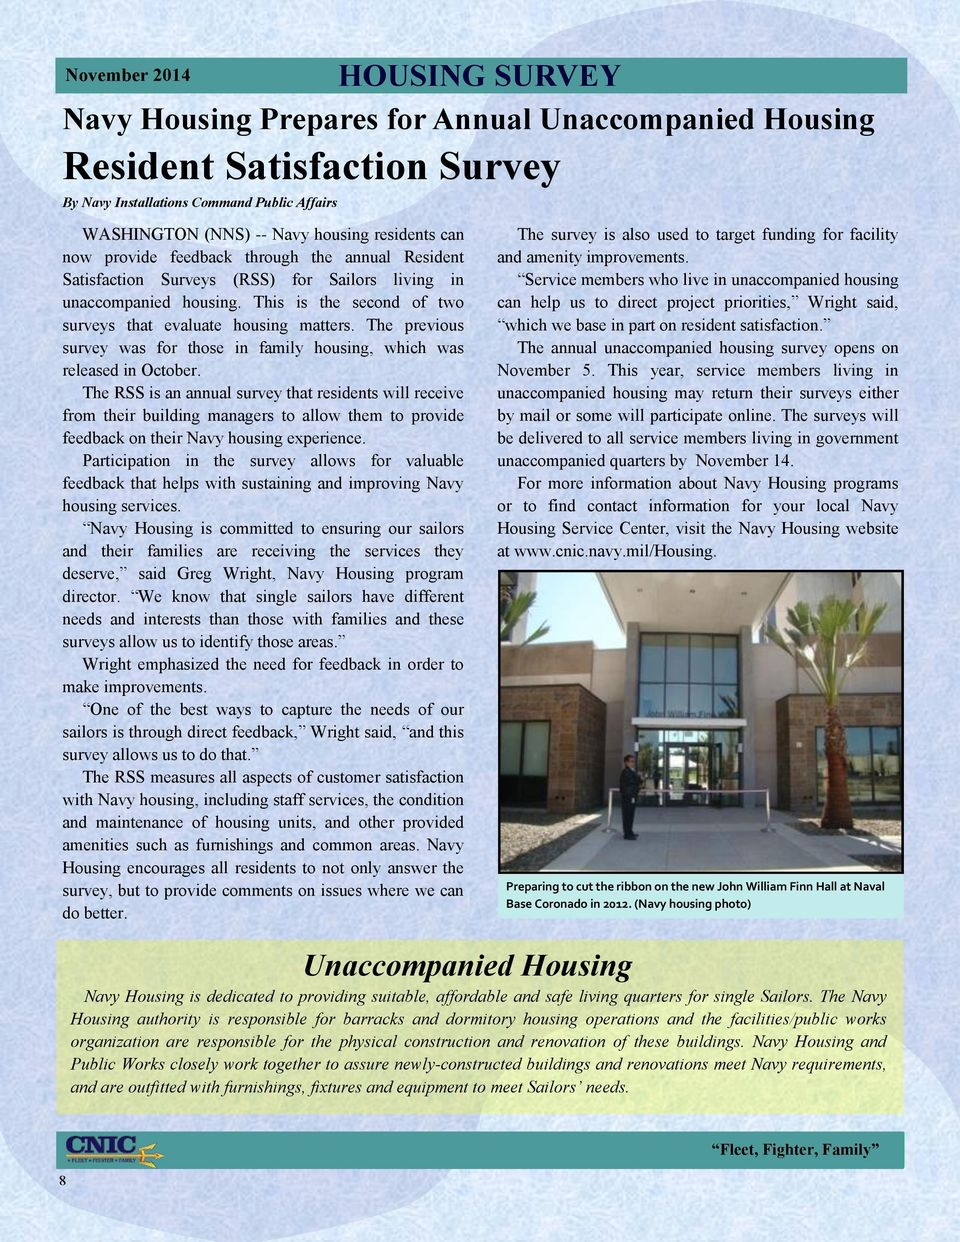 The previous survey was for those in family housing, which was released in October.